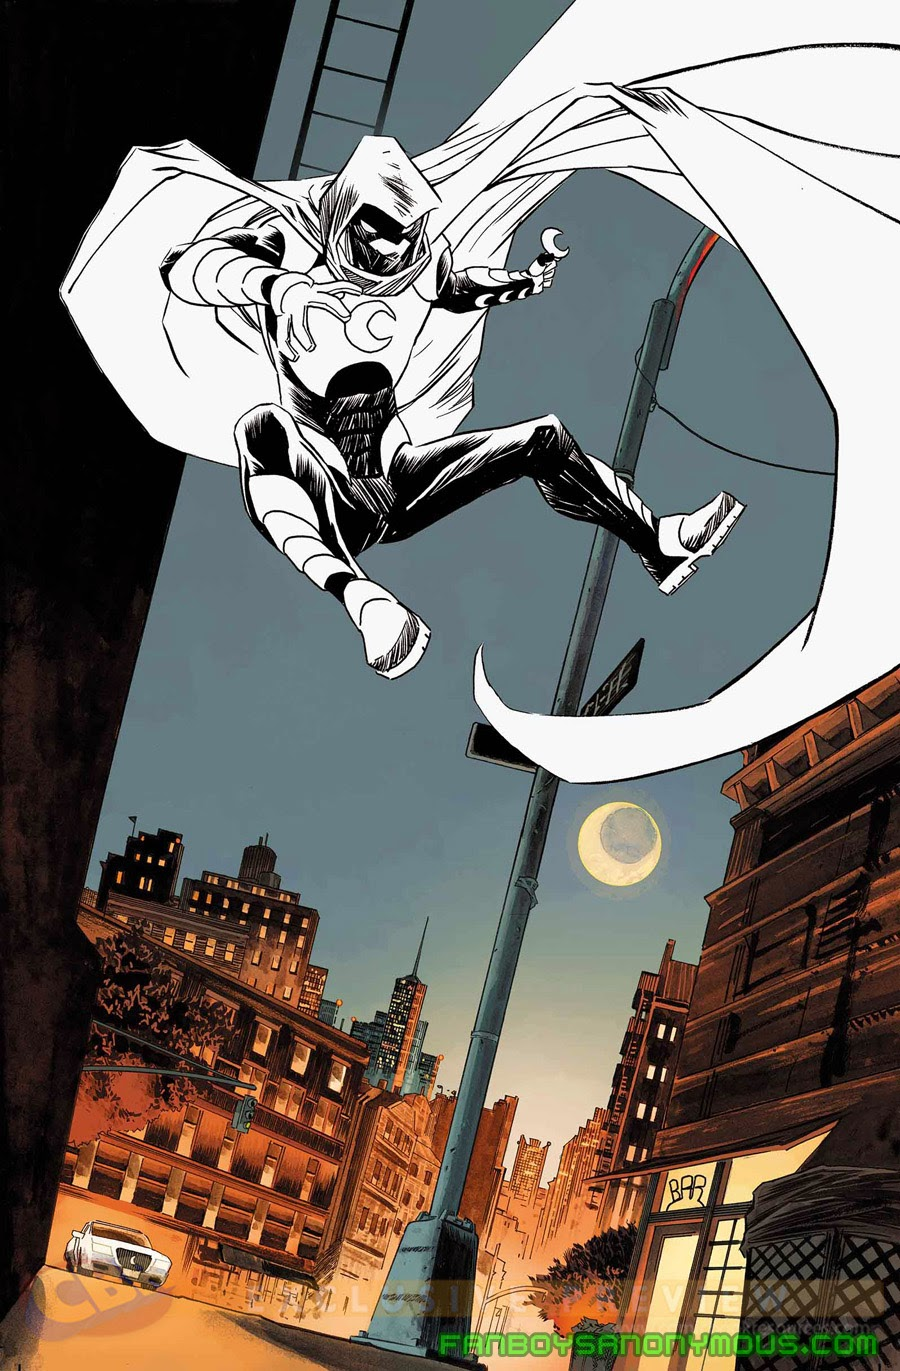 Read Moon Knight from your smart phone or tablet on Comixology or the Marvel Comics app